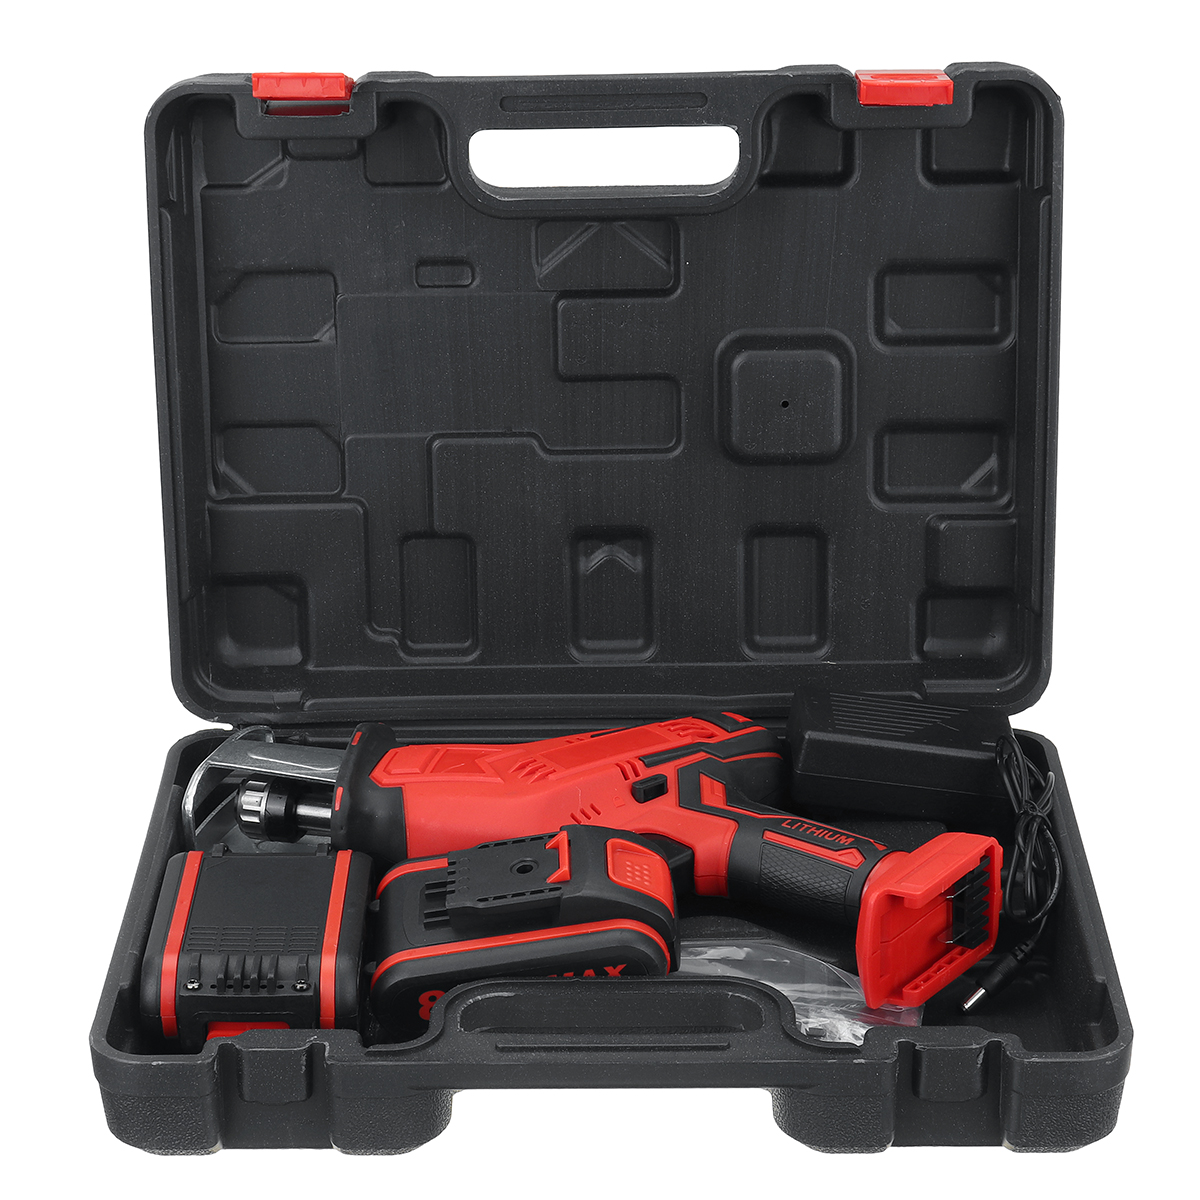 Wood Cutting Saw Tool Replacement Reciprocating Makita Battery Cordless 88V Electric 18V For Metal Drillpro Portable Saw Machine